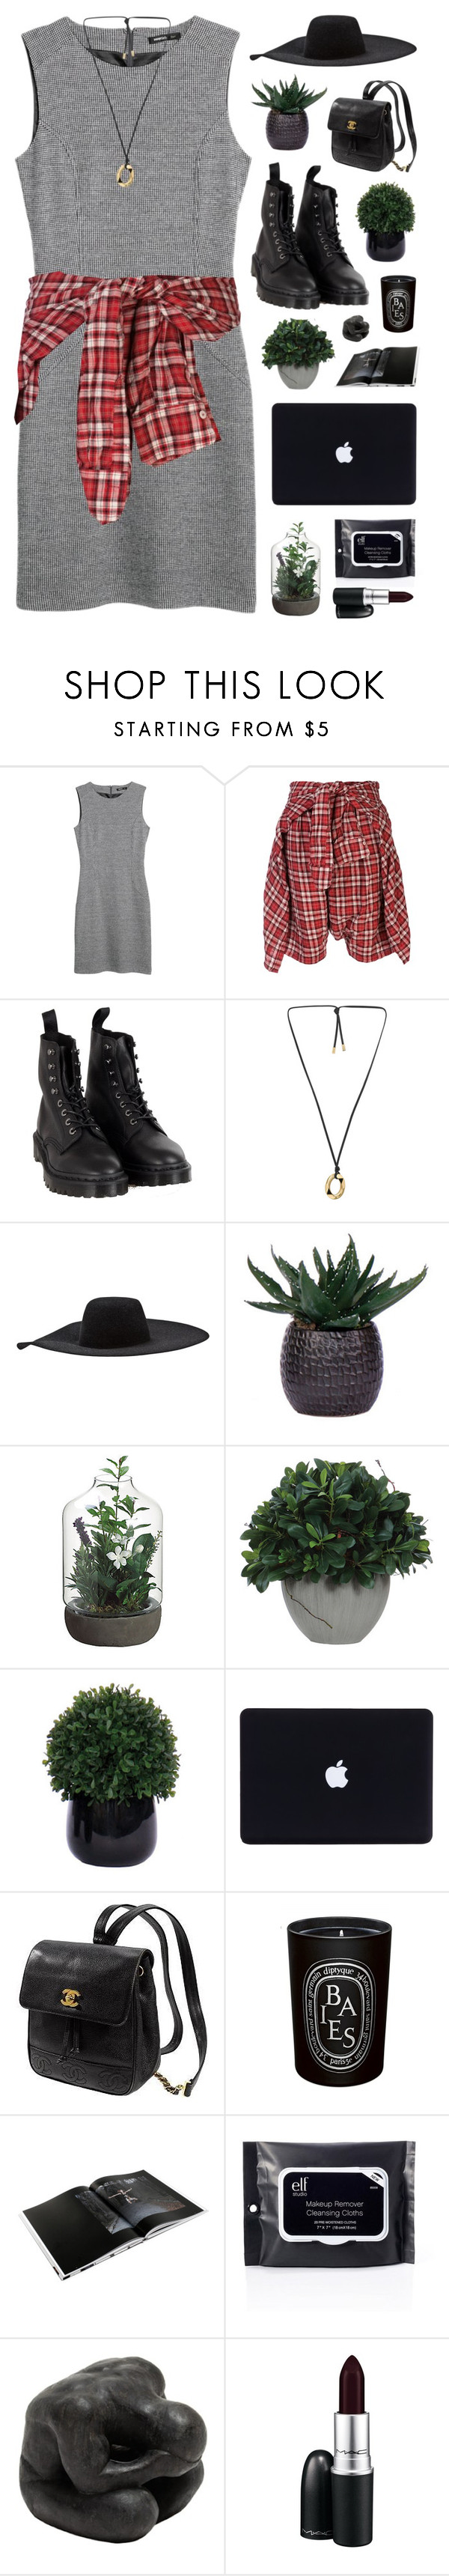 """vamp it up"" by karm-a ❤ liked on Polyvore featuring MANGO, R13, Dr. Martens, Michael Kors, Lanvin, Lux-Art Silks, Kate Spade, Diptyque, GESTALTEN and Oly"